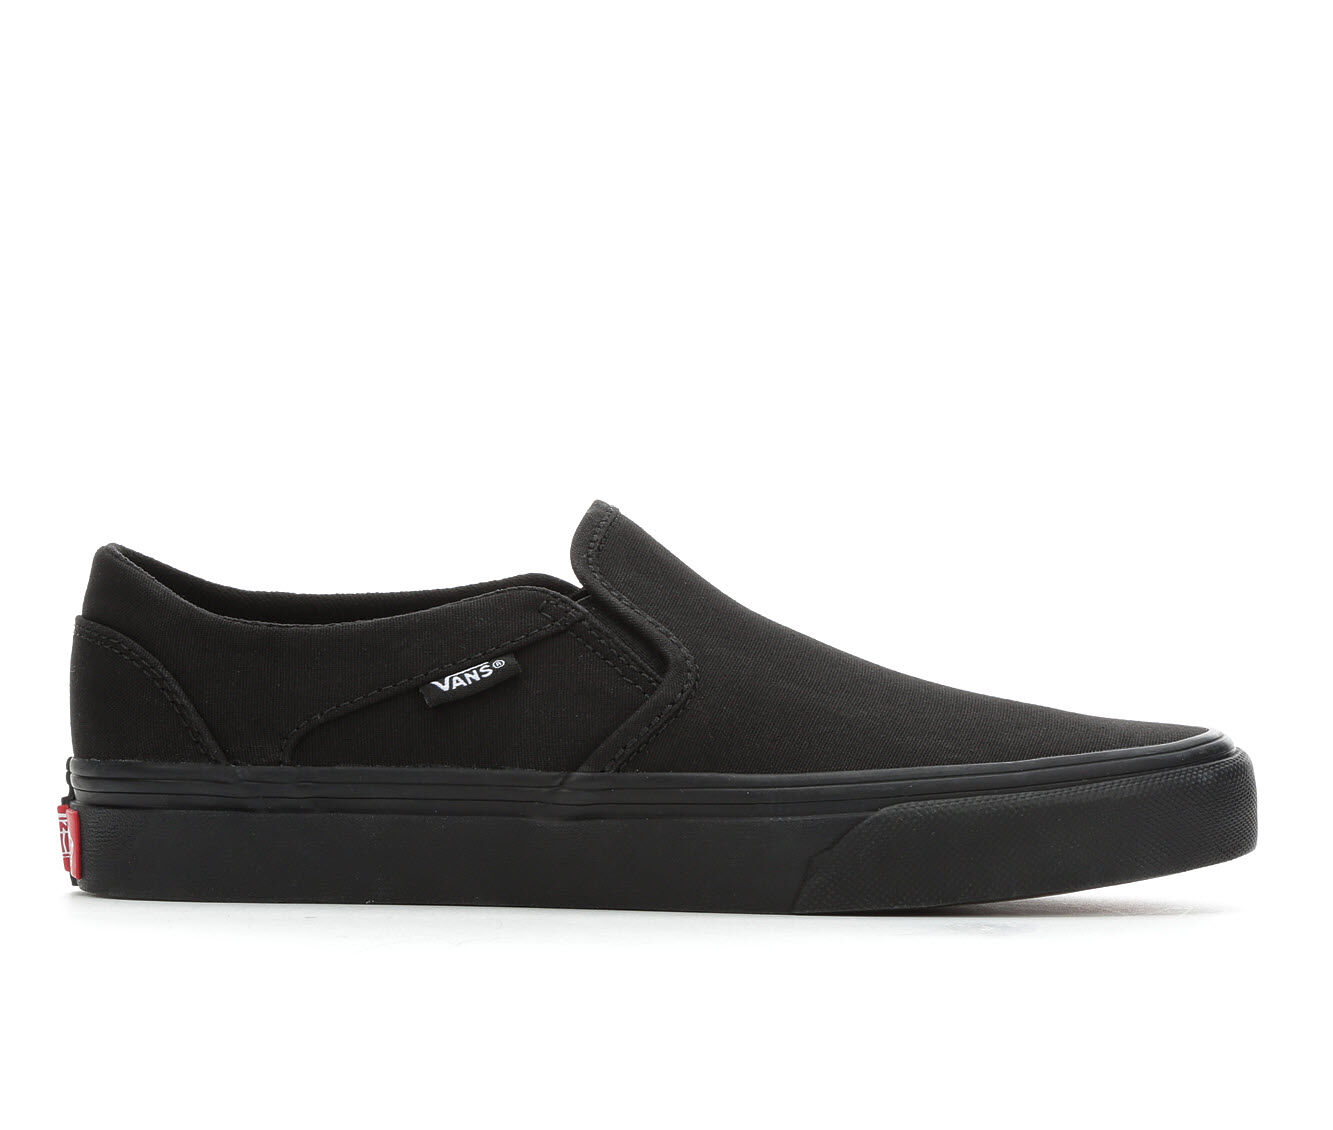 2vans asher mujer